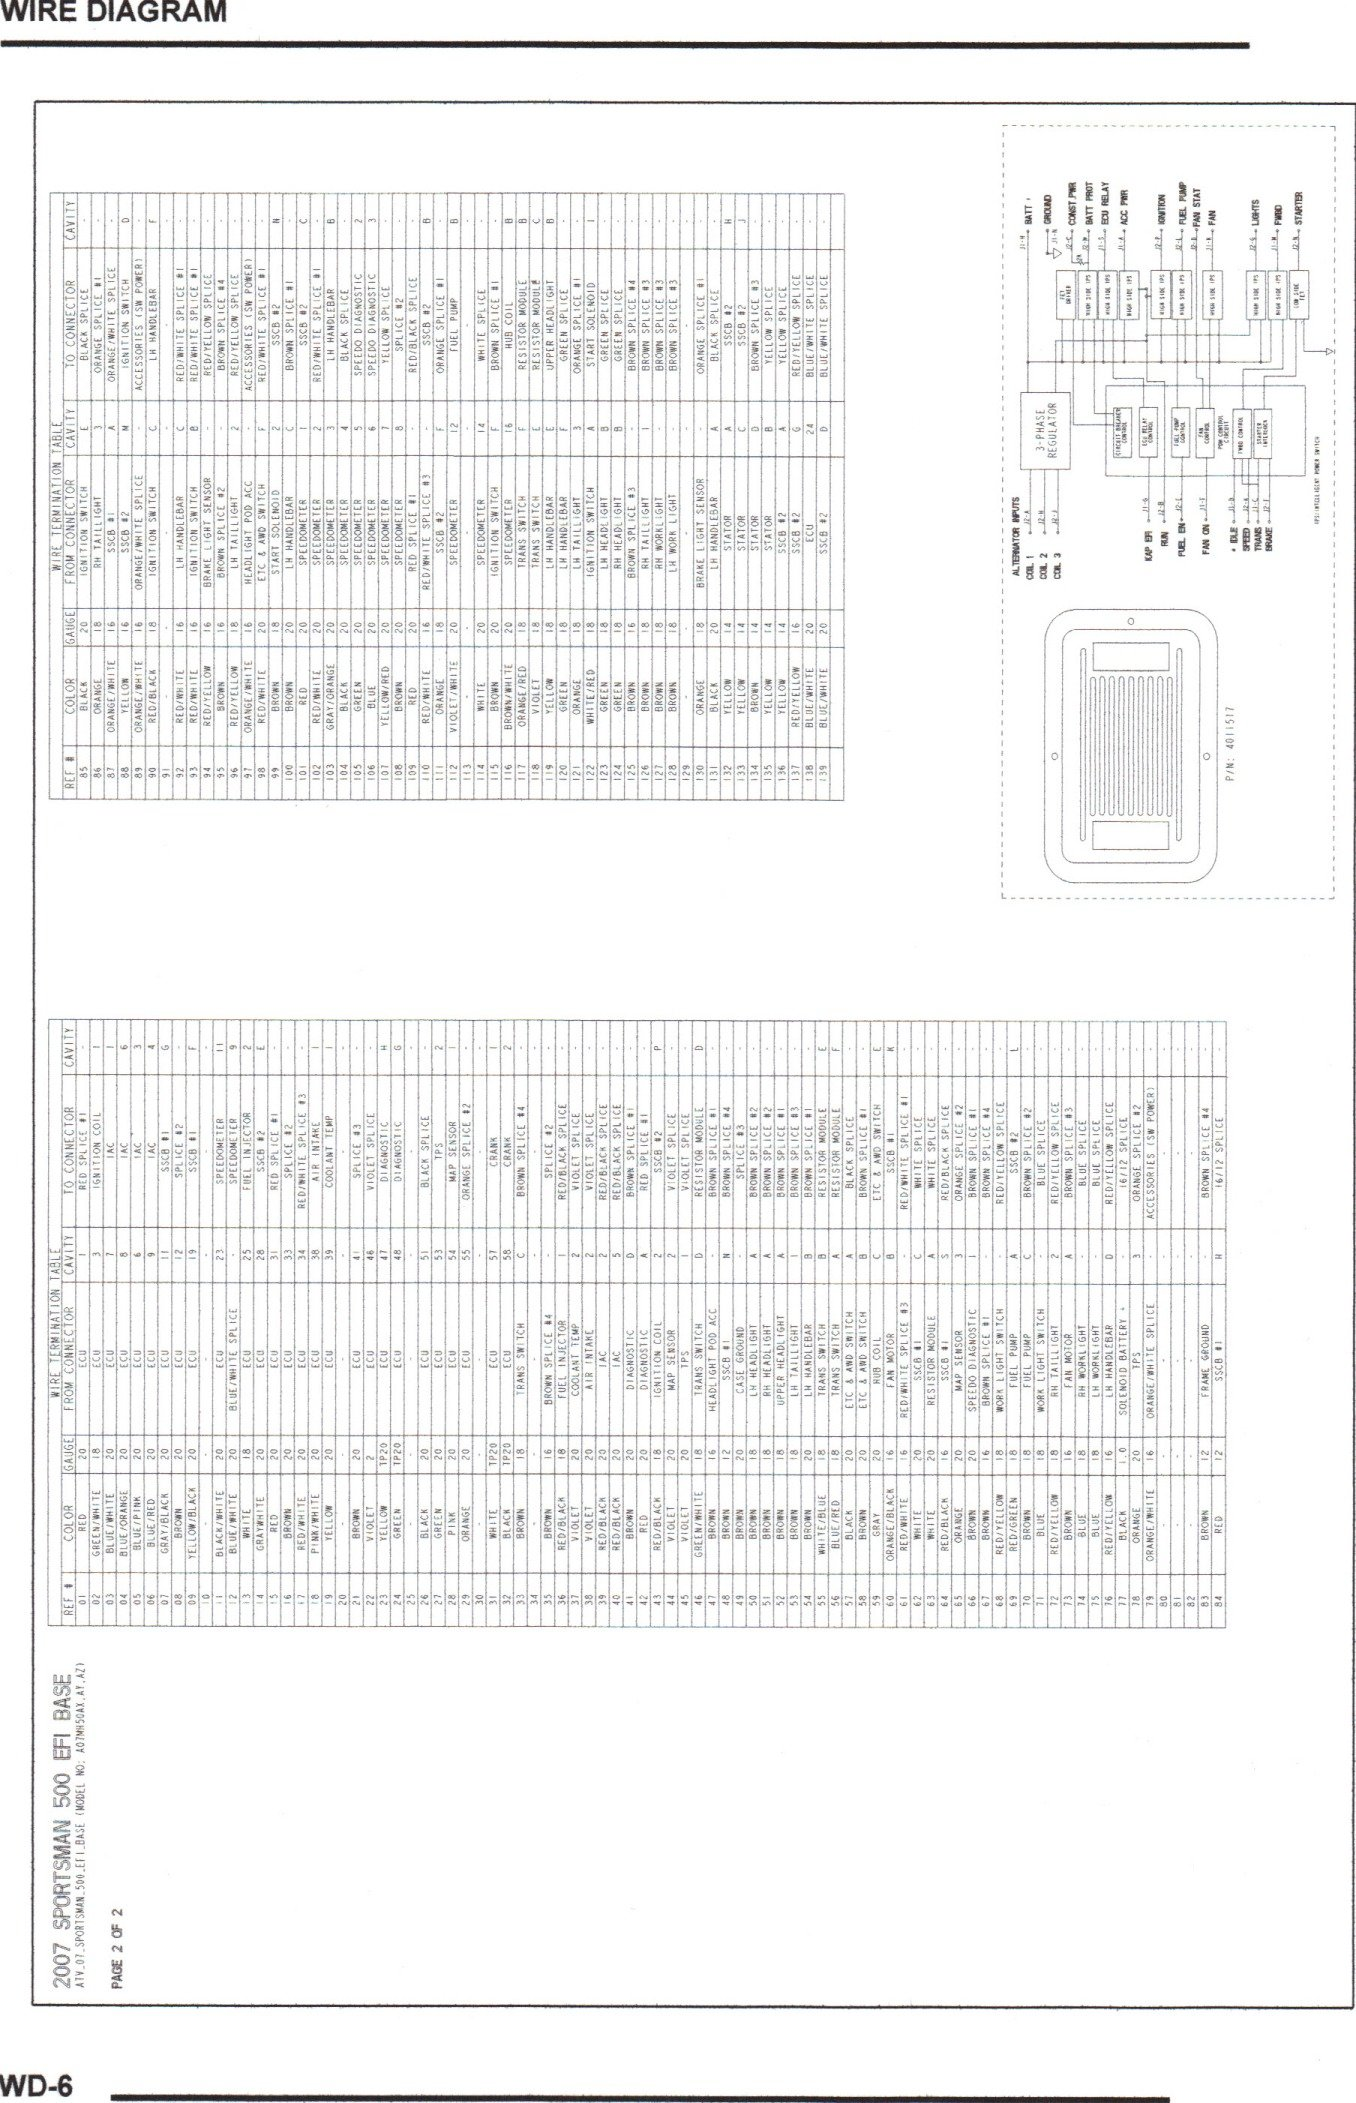 2010 06 22_210148_500_efi_wiring_diagram2 my 2007 sportsman 500 doesn't start no click or dash lights 2000 polaris scrambler 500 wiring diagram at creativeand.co